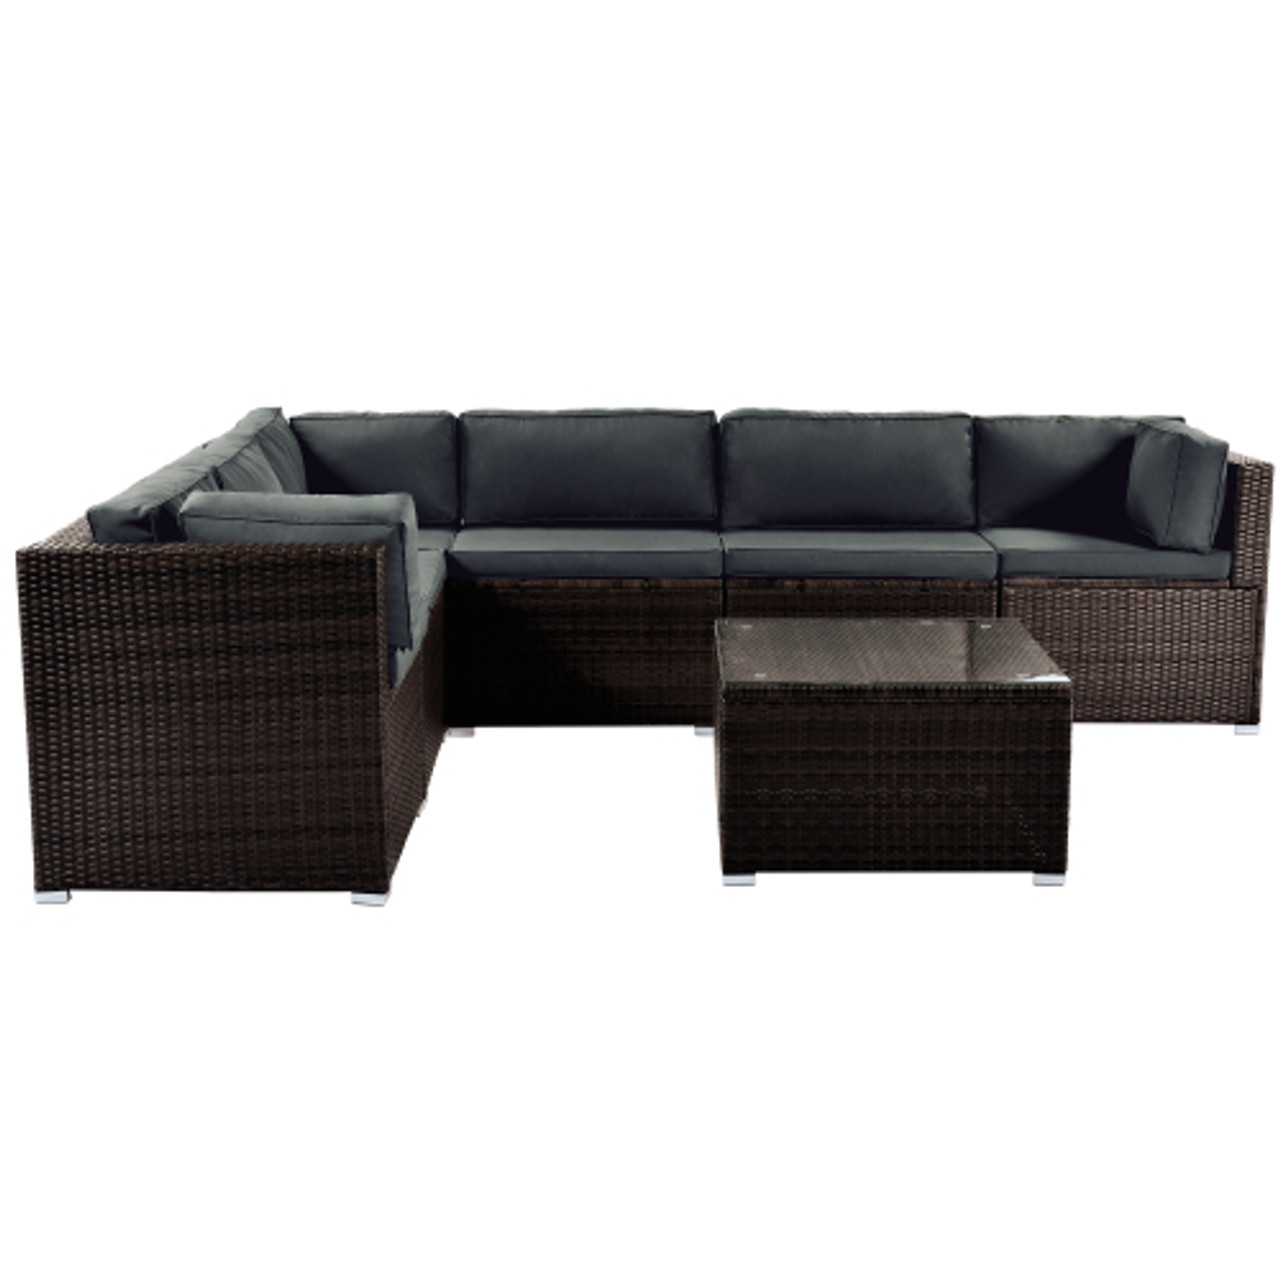 Topmax 7 Piece Patio Furniture Set Outdoor Sectional Conversation Set With Soft Cushions Brown Direct Wicker